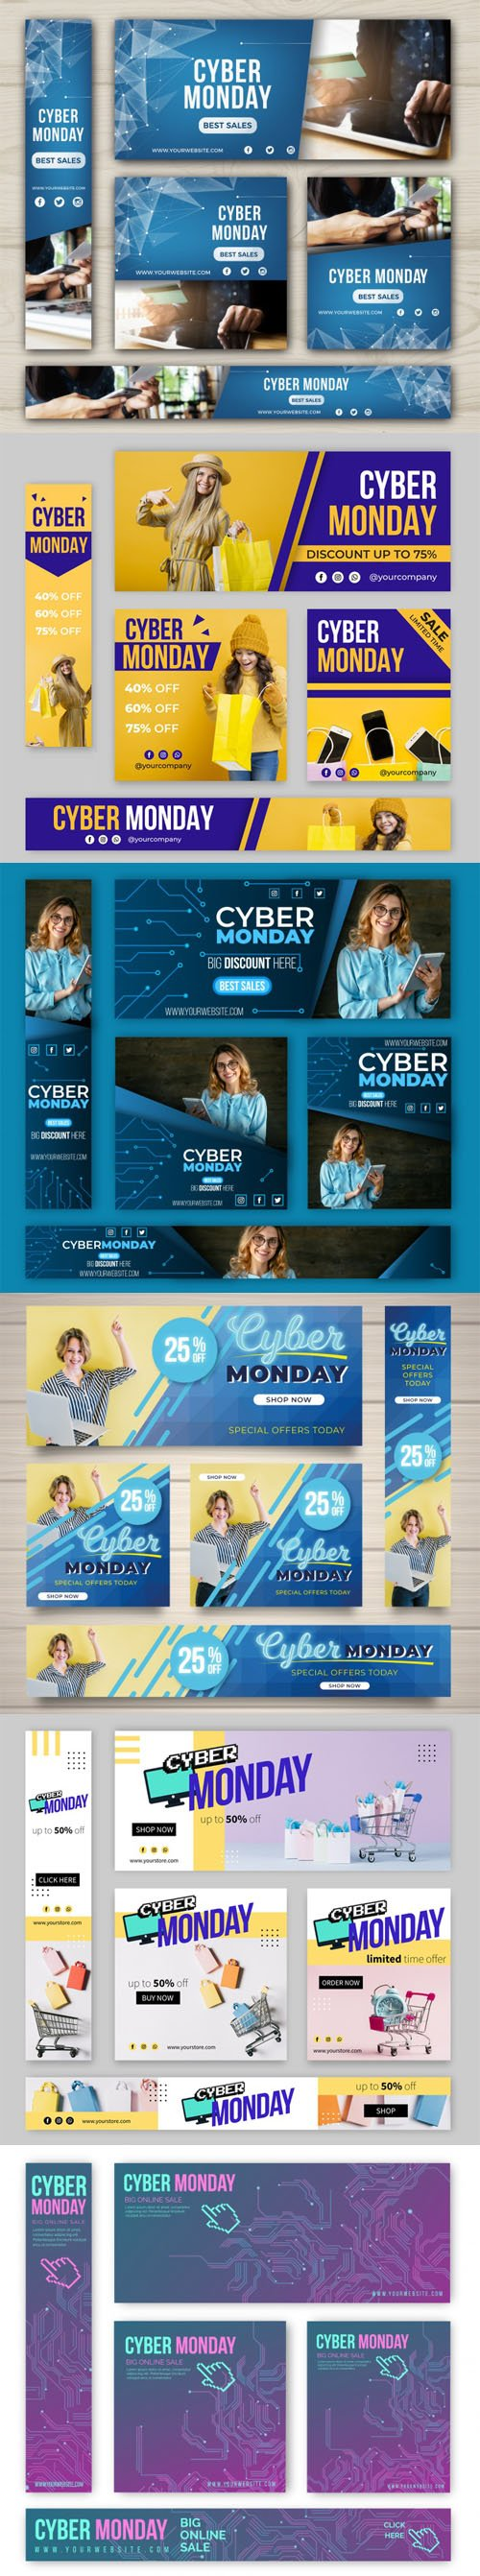 Cyber Monday 2019 Banners Vector Colletion Vol.1